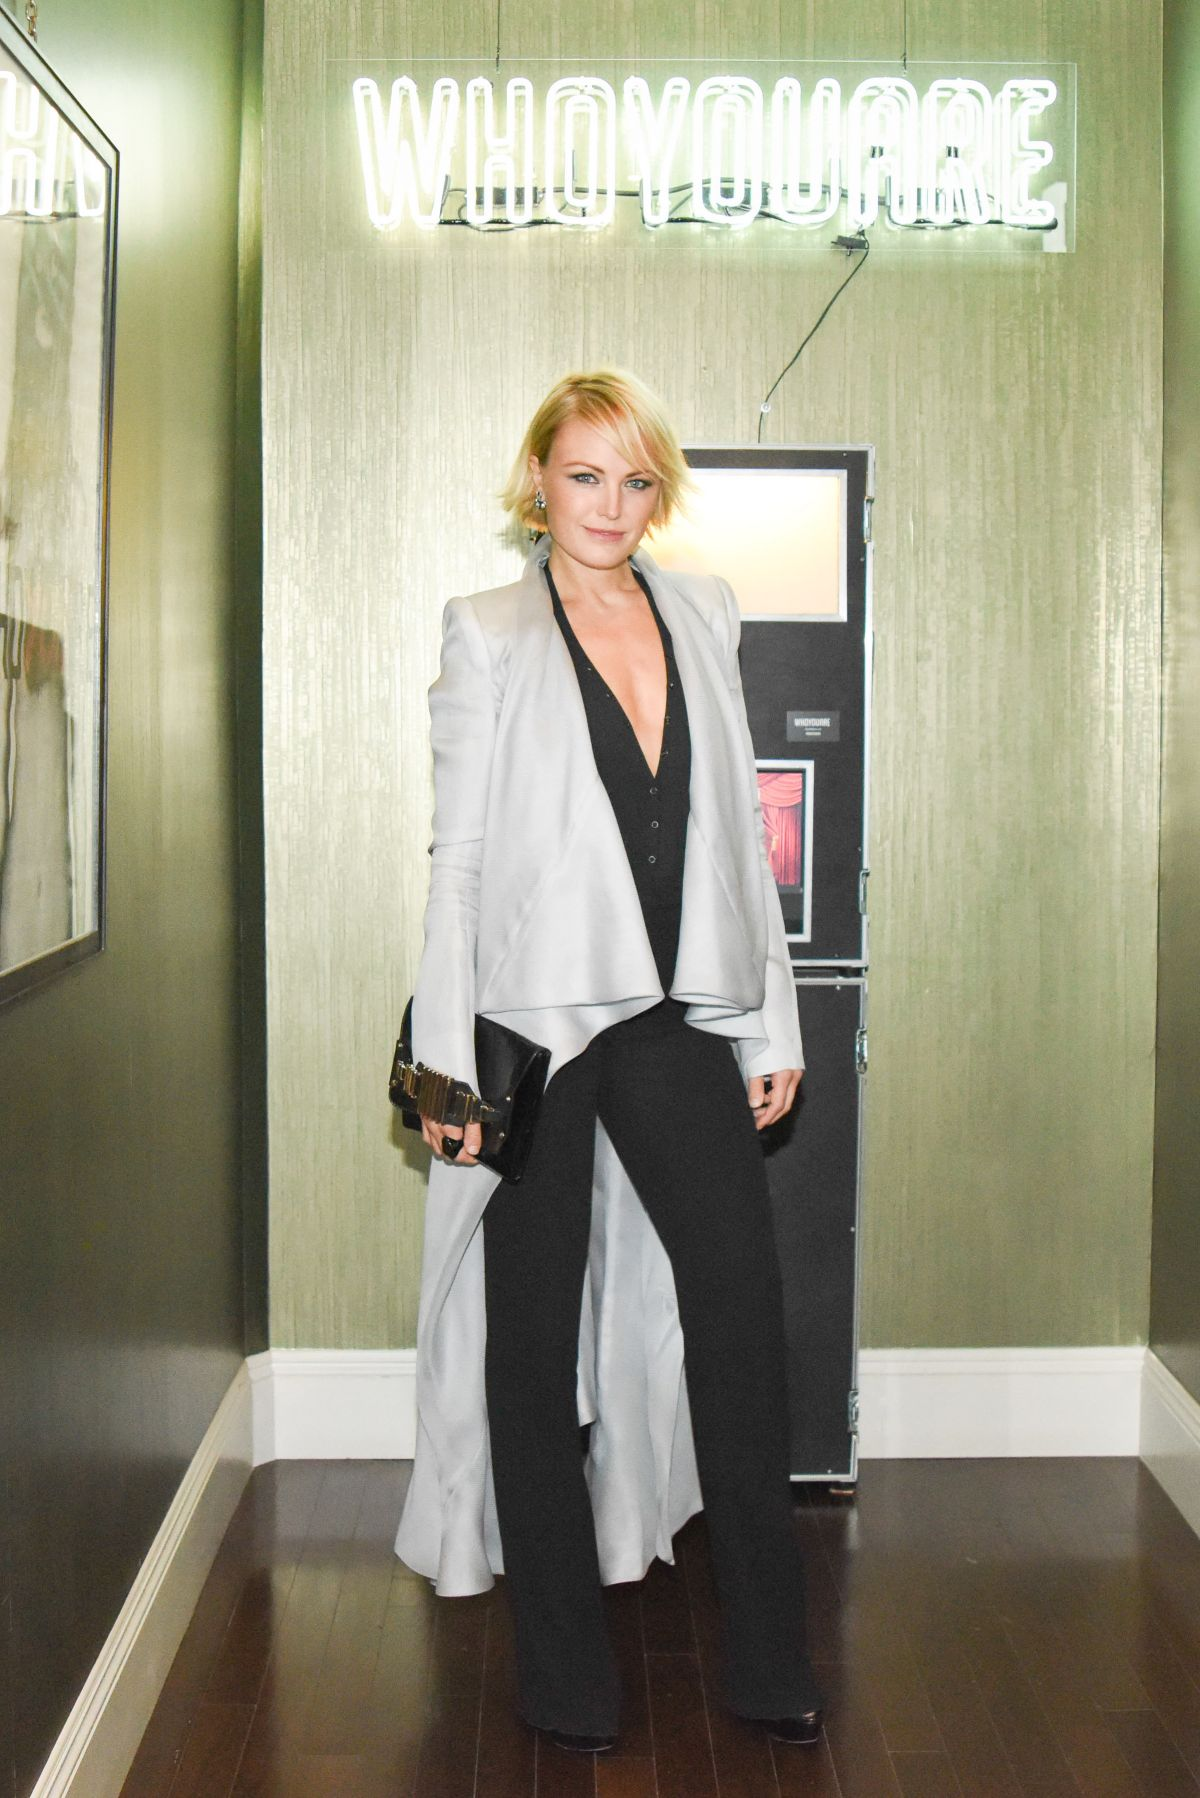 MALIN AKERMAN at Preview of the Residency at Whoyouare in Los Angeles